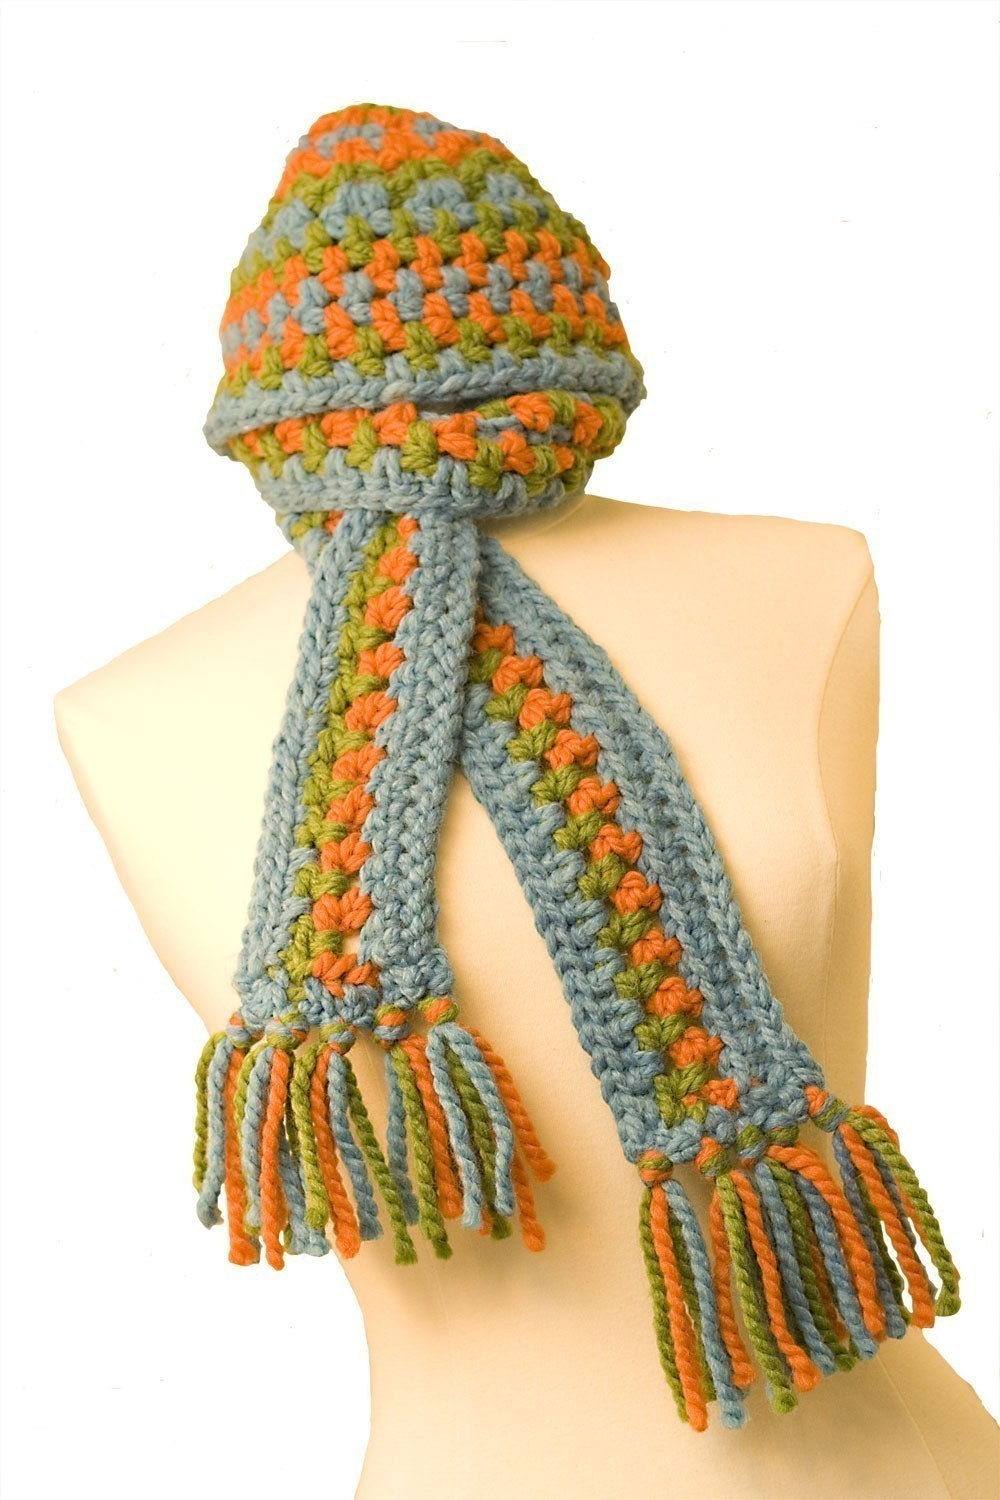 crochet pattern chunky hat and scarf from kristielynn Crochet Scarves And Hats Patterns